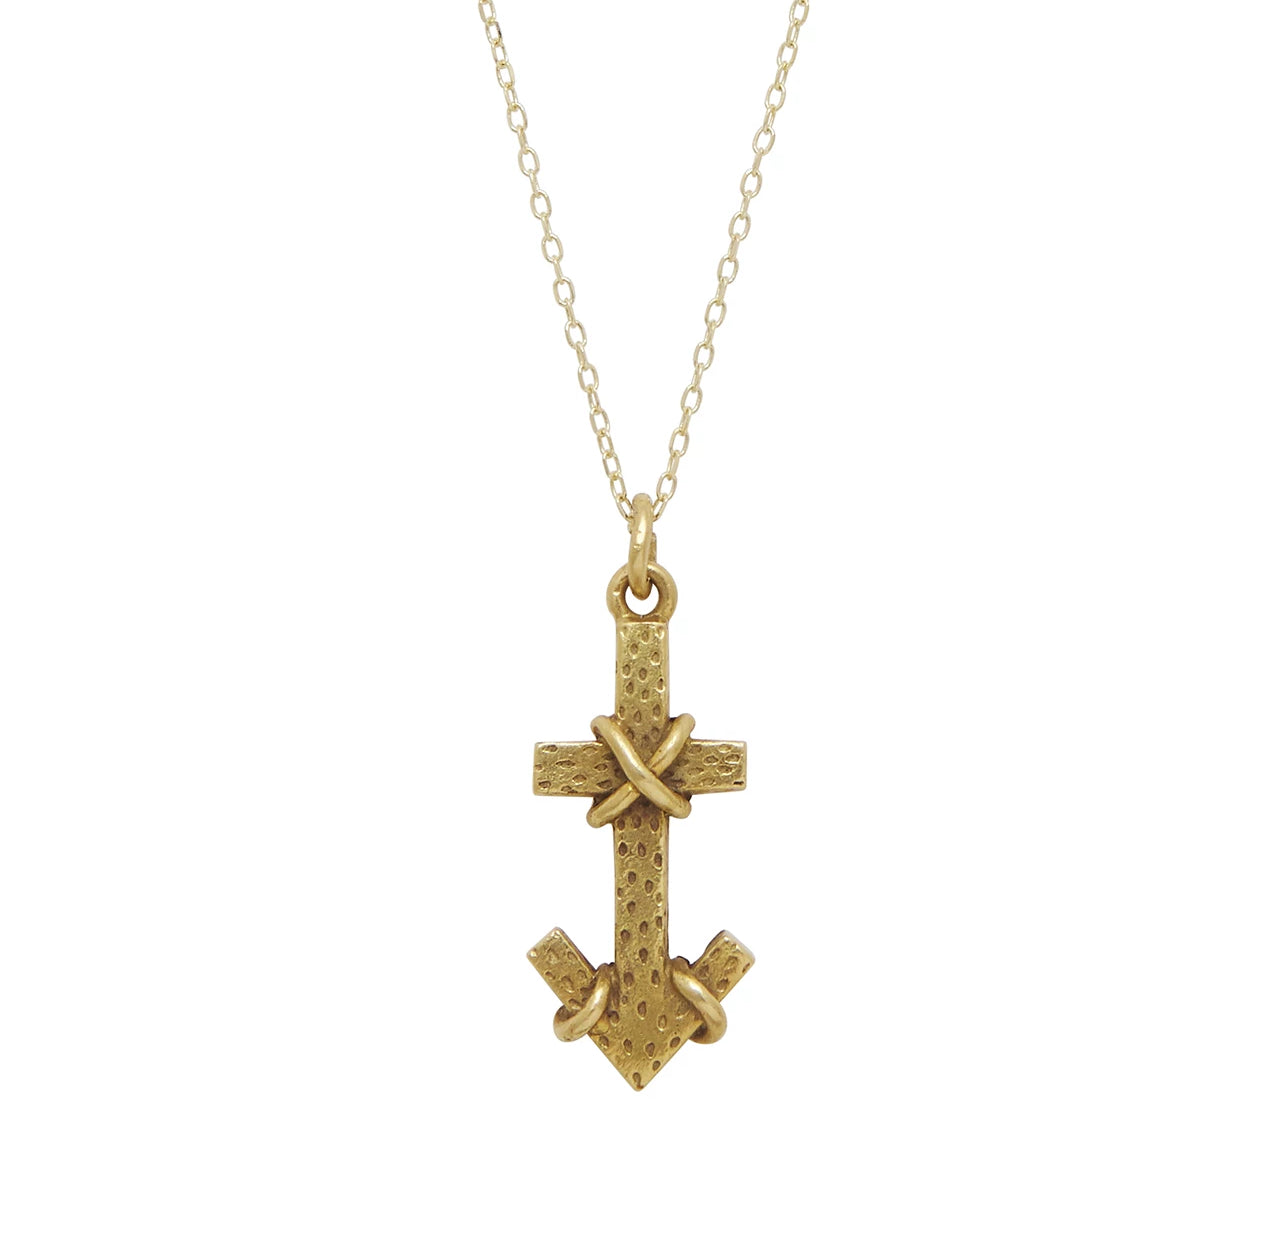 Textured Anchor 18K Gold Pendant Necklace